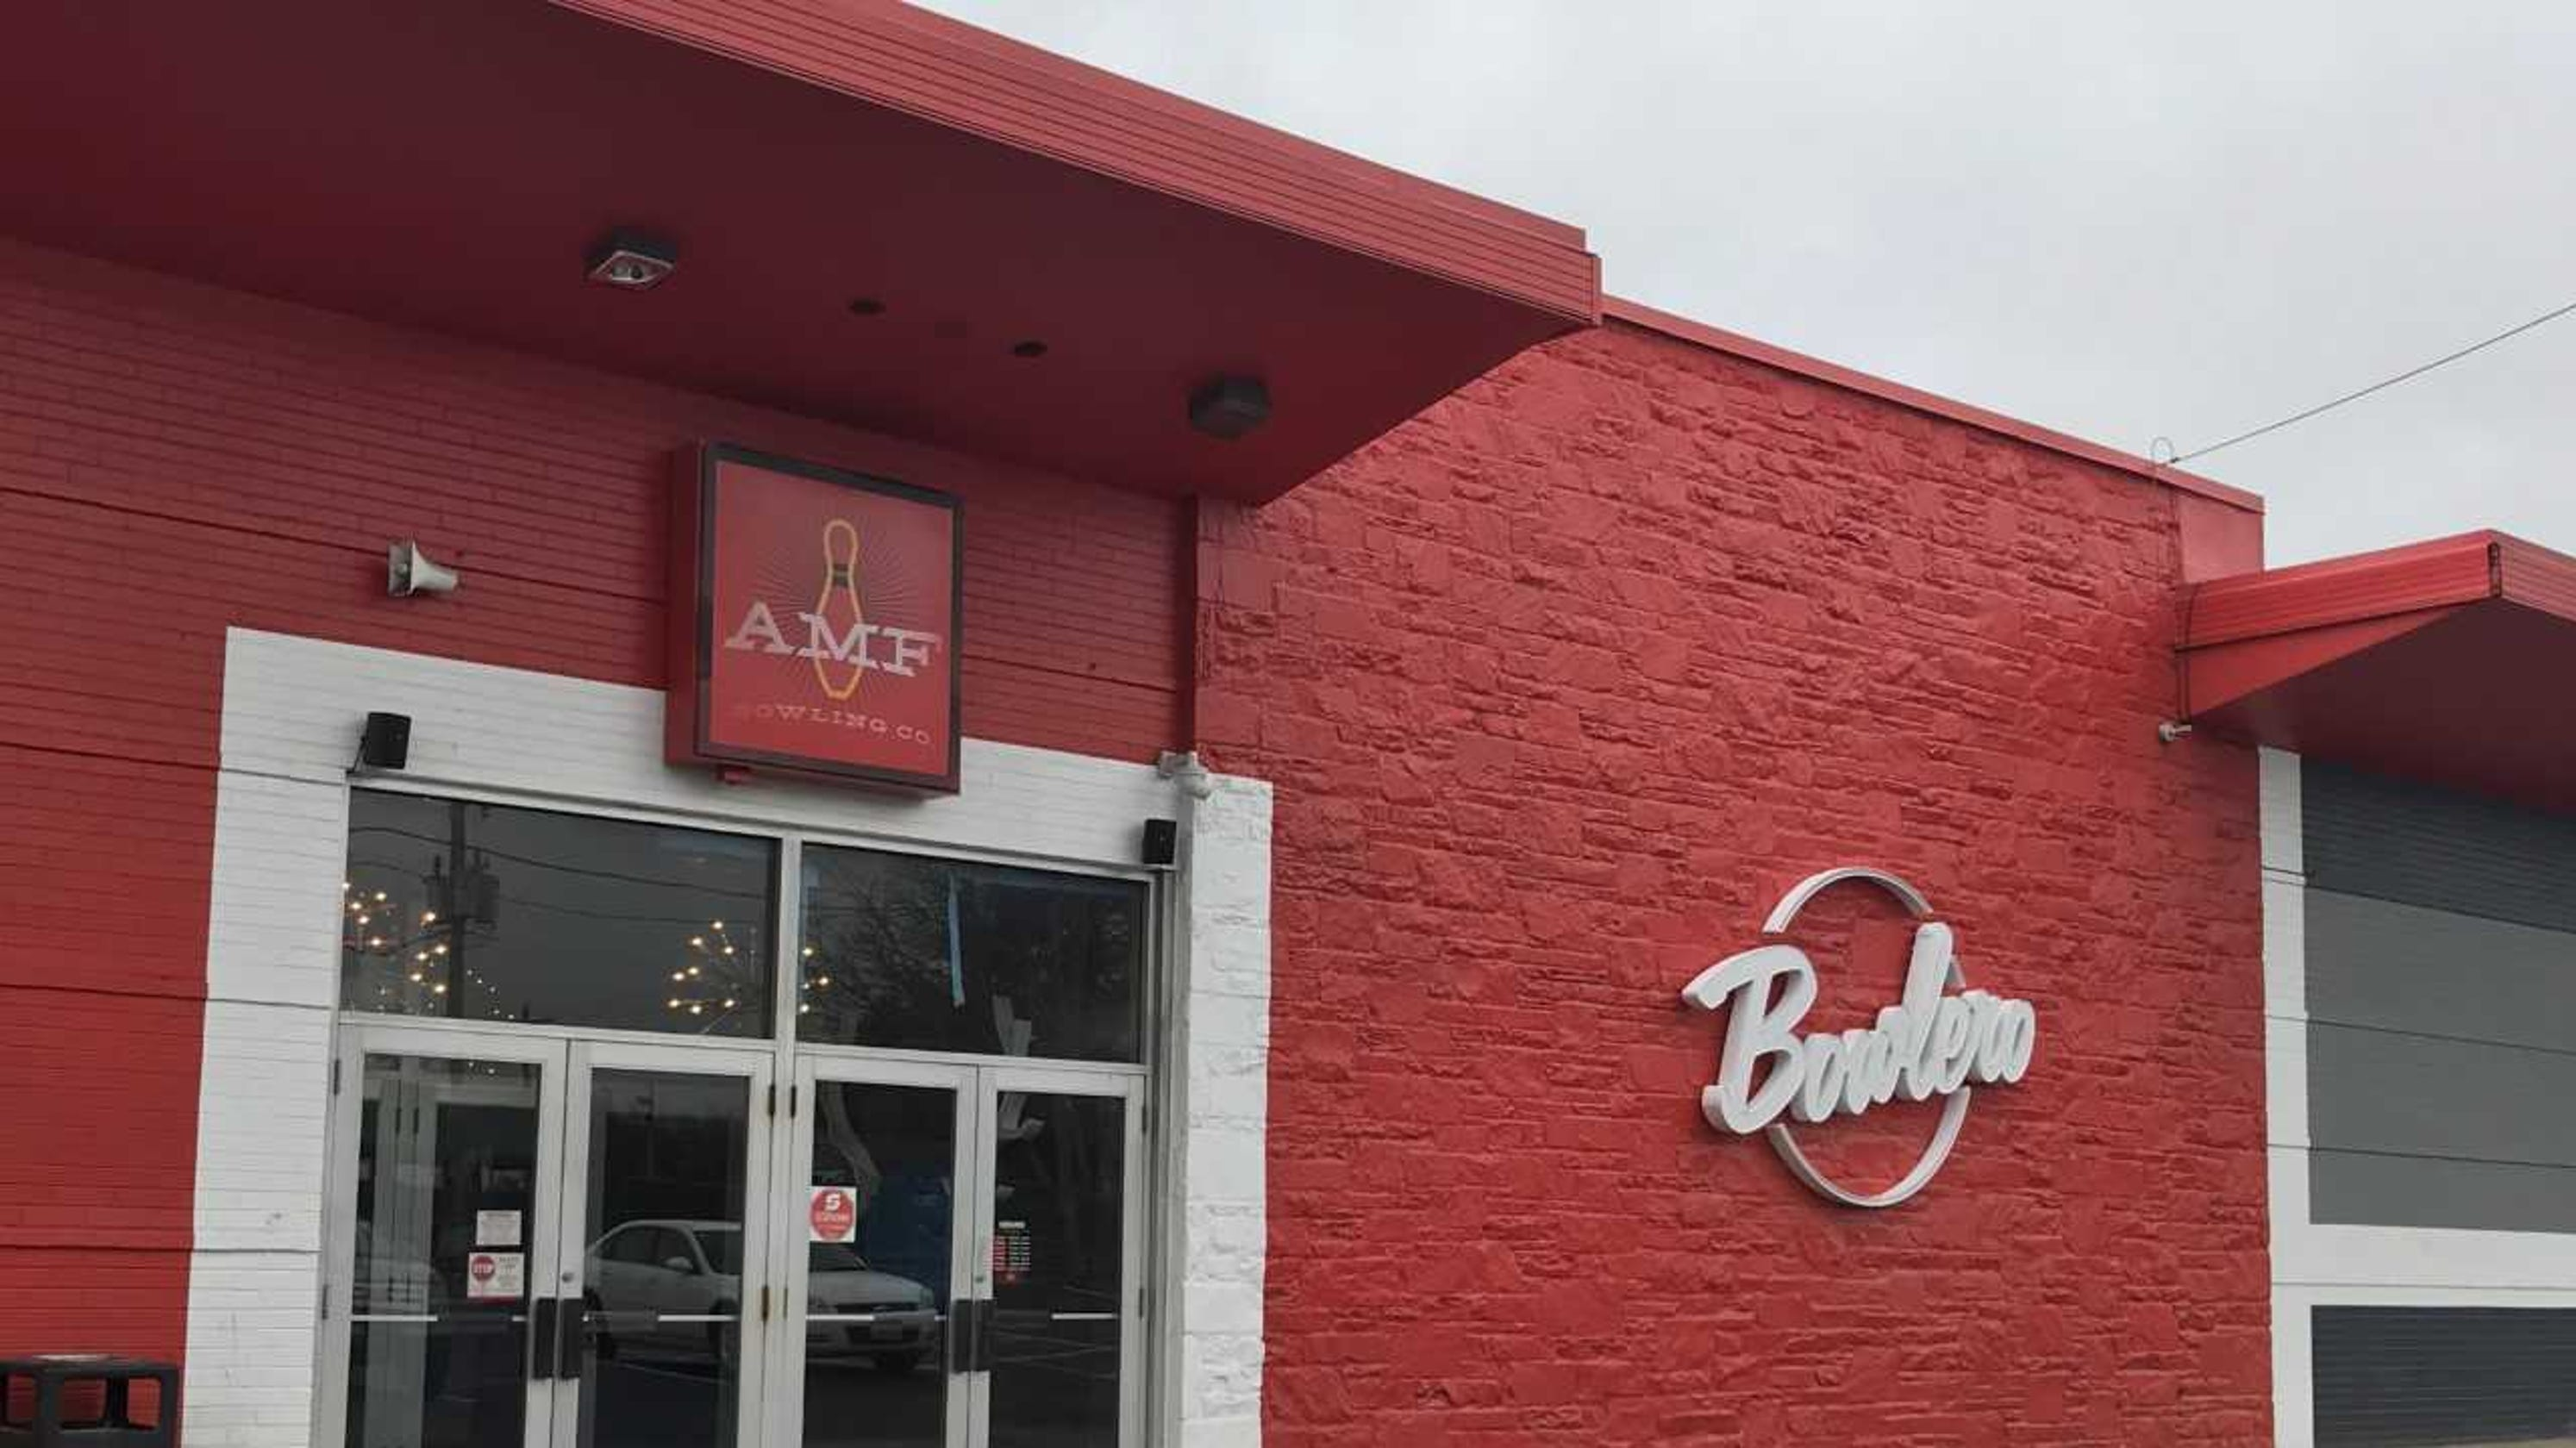 Wilmington bowling alley's bar area closed due to sewage backup